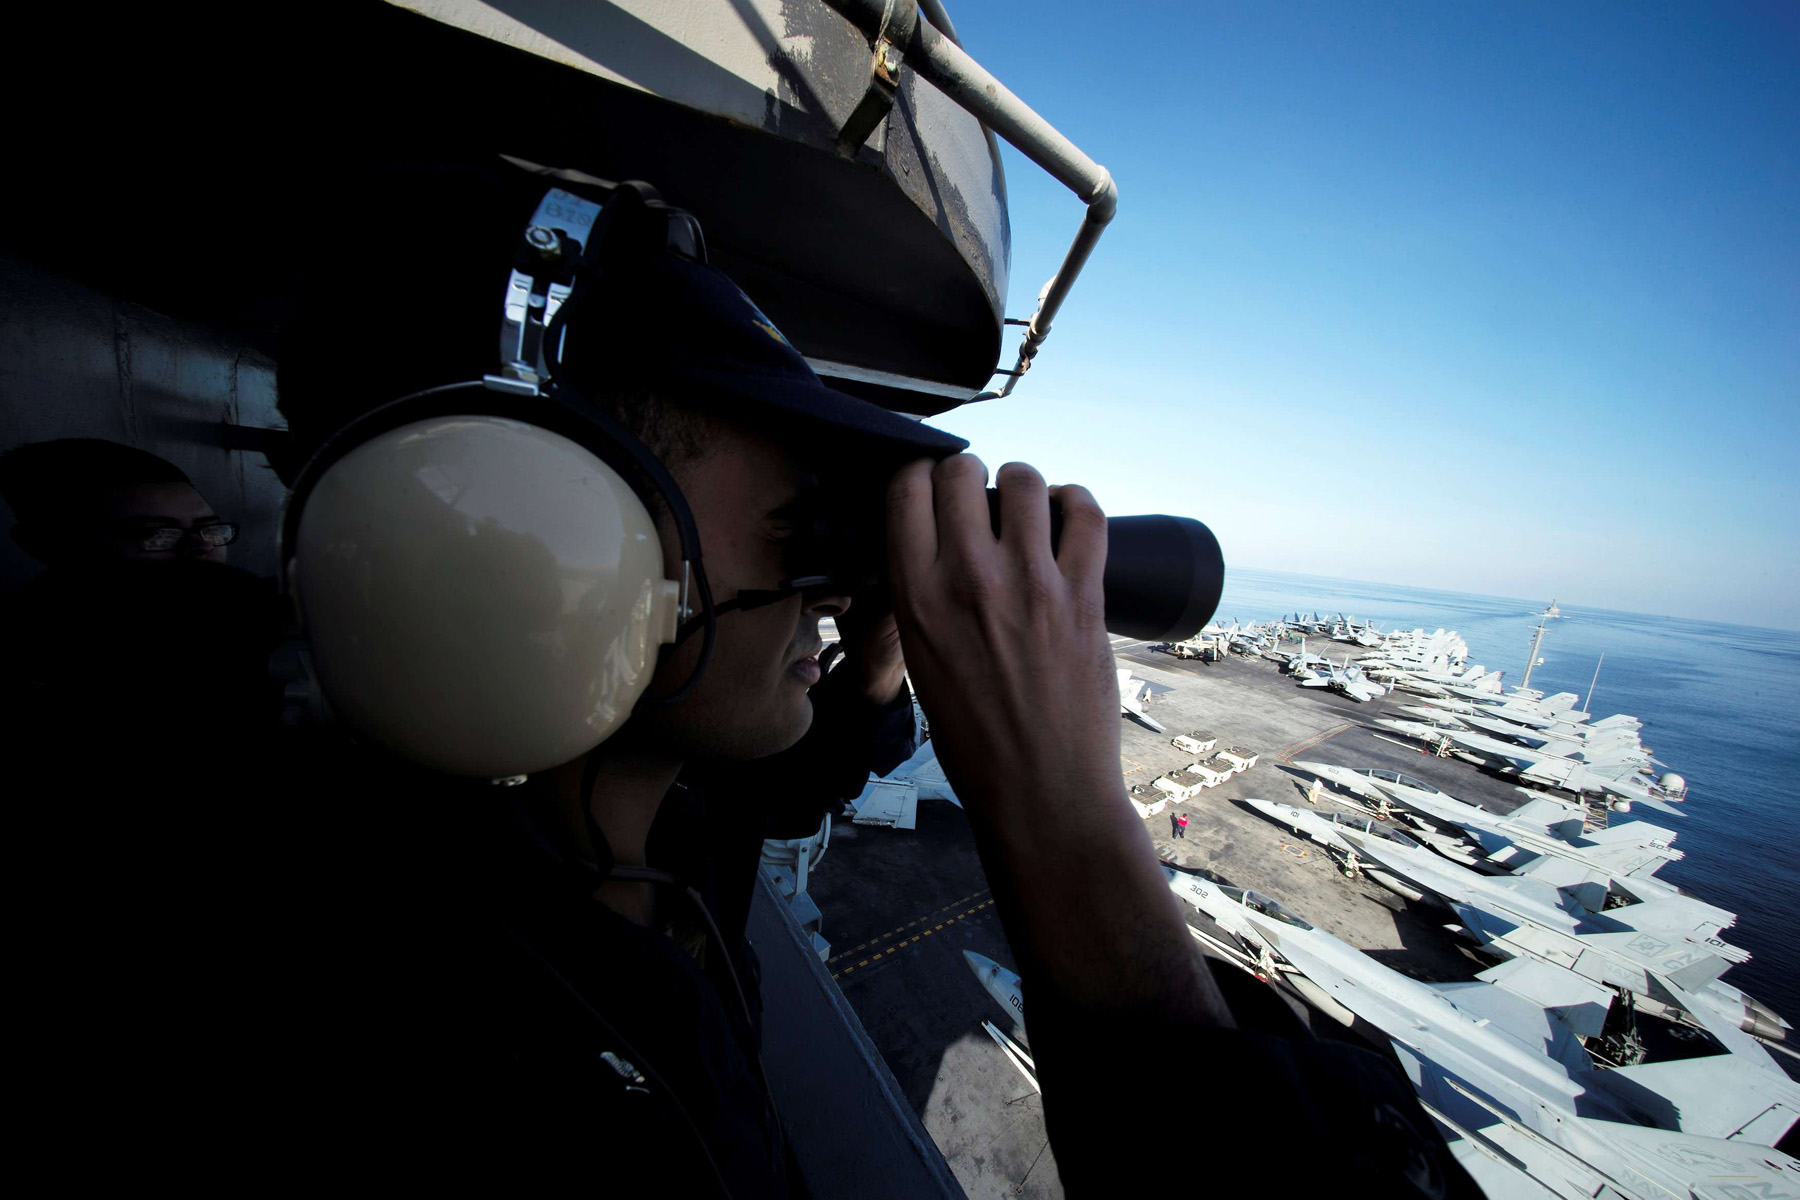 A US sailor keeps watch from the captain's bridge onboard the USS John C. Stennis as it makes its way to the Gulf through the Strait of Hormuz, last December. (Reuters)